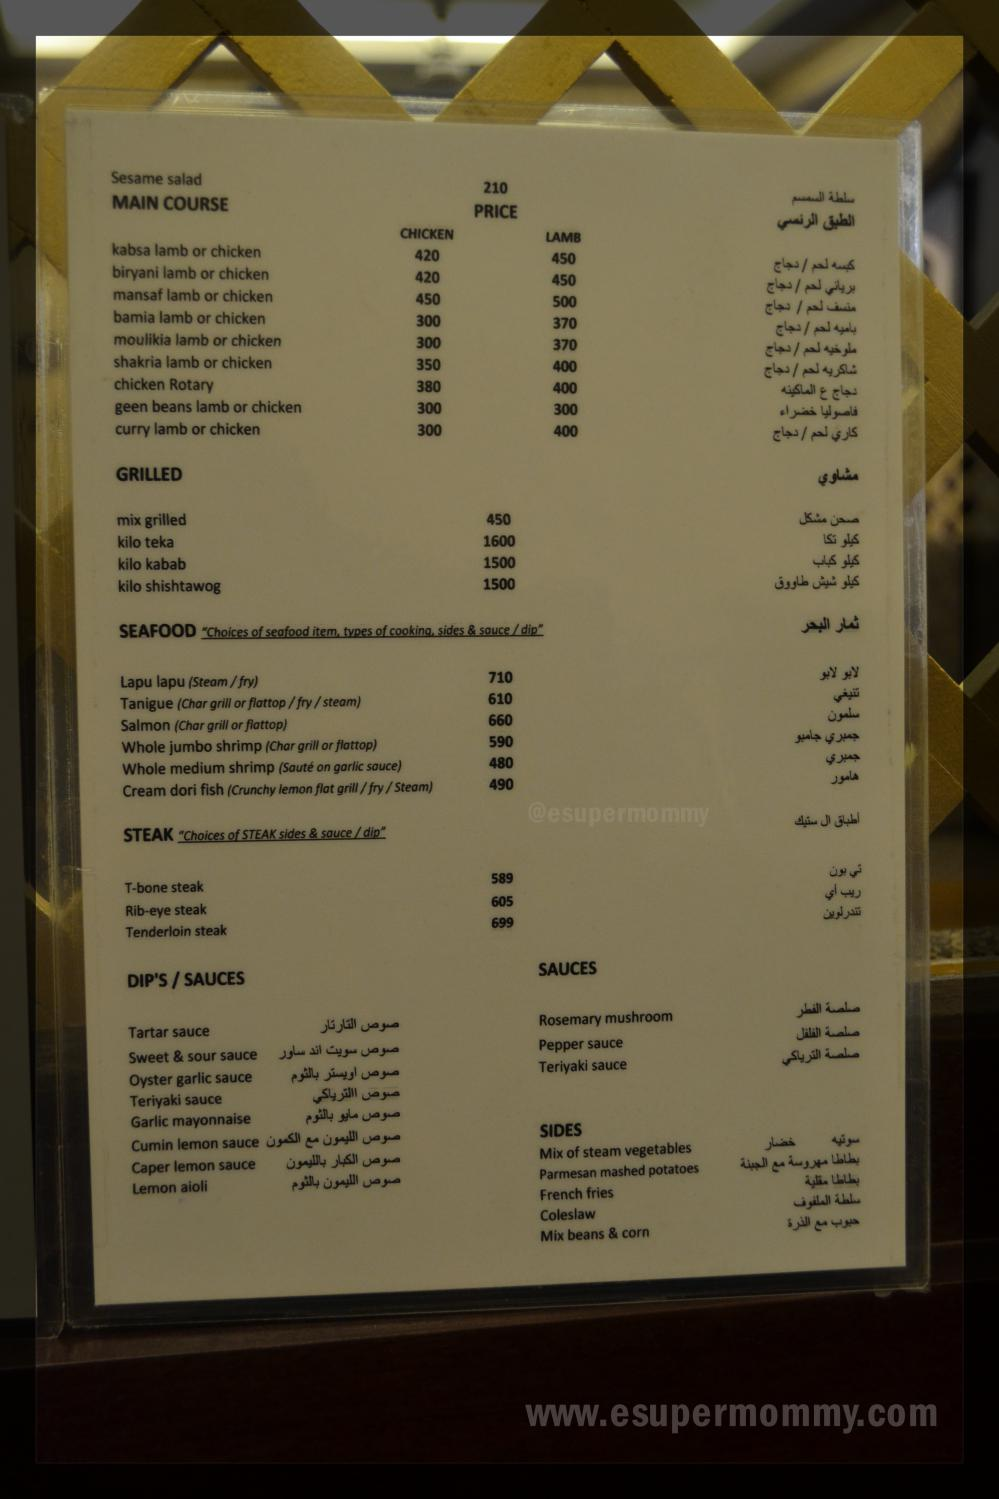 Al-Qaysar Restaurant and Cafe Main Course Price list